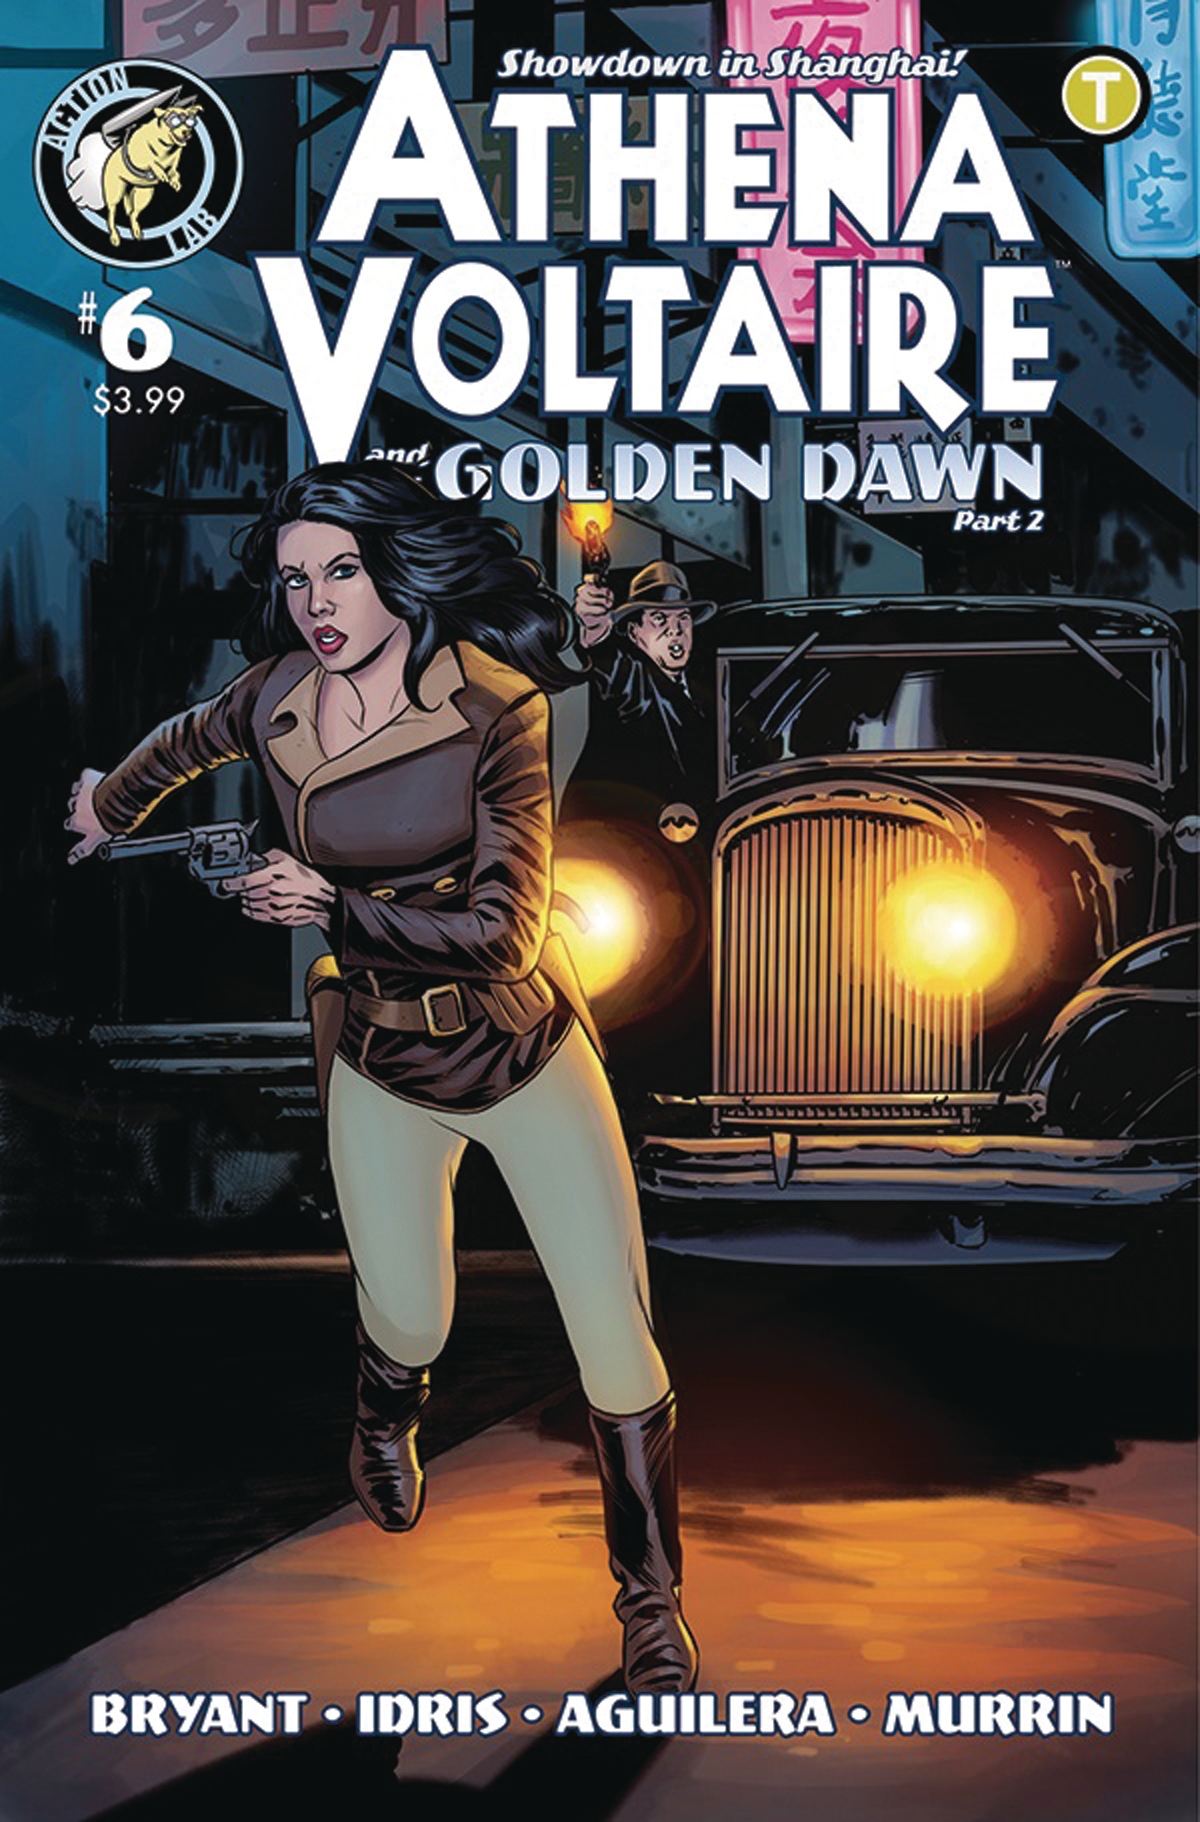 ATHENA VOLTAIRE 2018 ONGOING #6 CVR A BRYANT